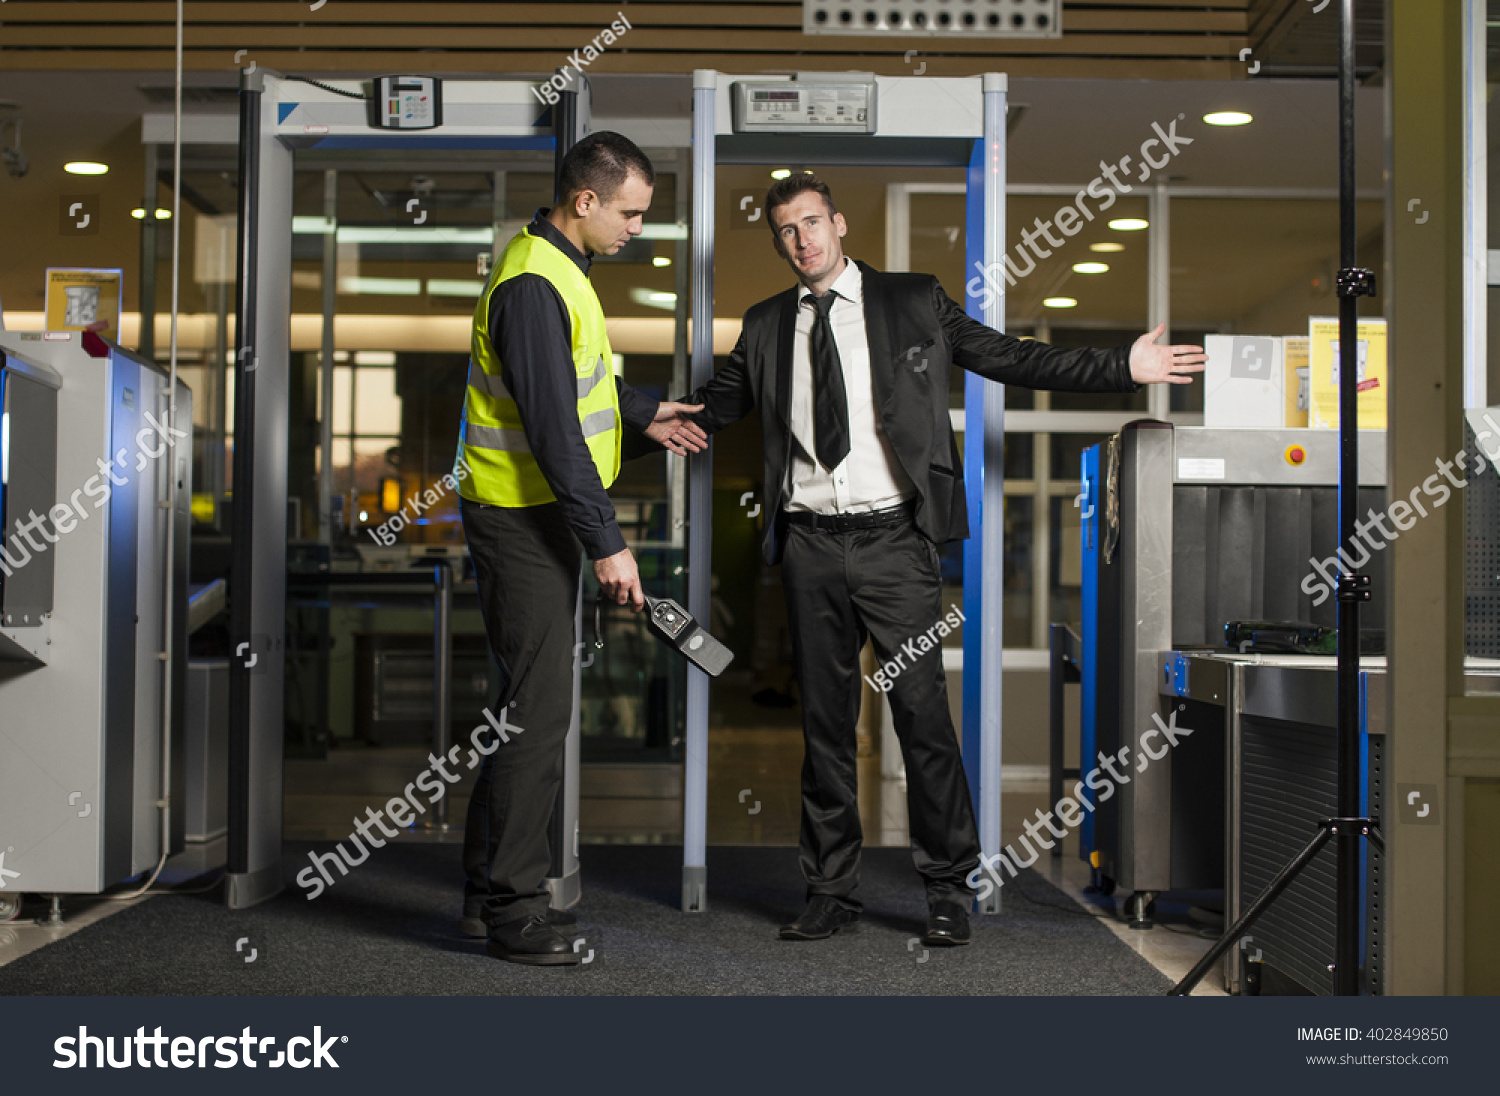 Airport security check gates metal detector stock photo